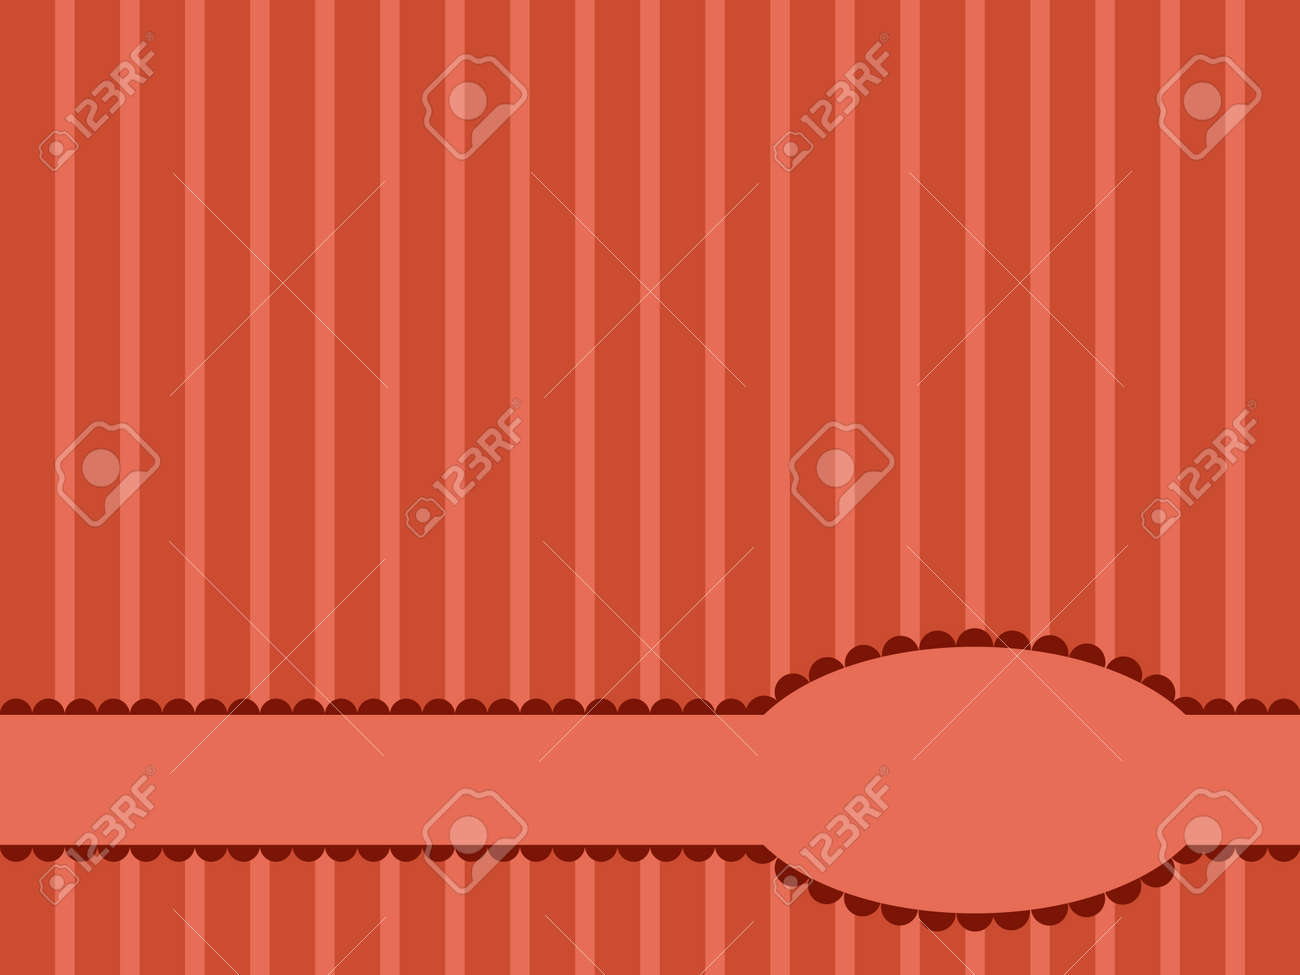 greeting card template design Stock Vector - 17811567